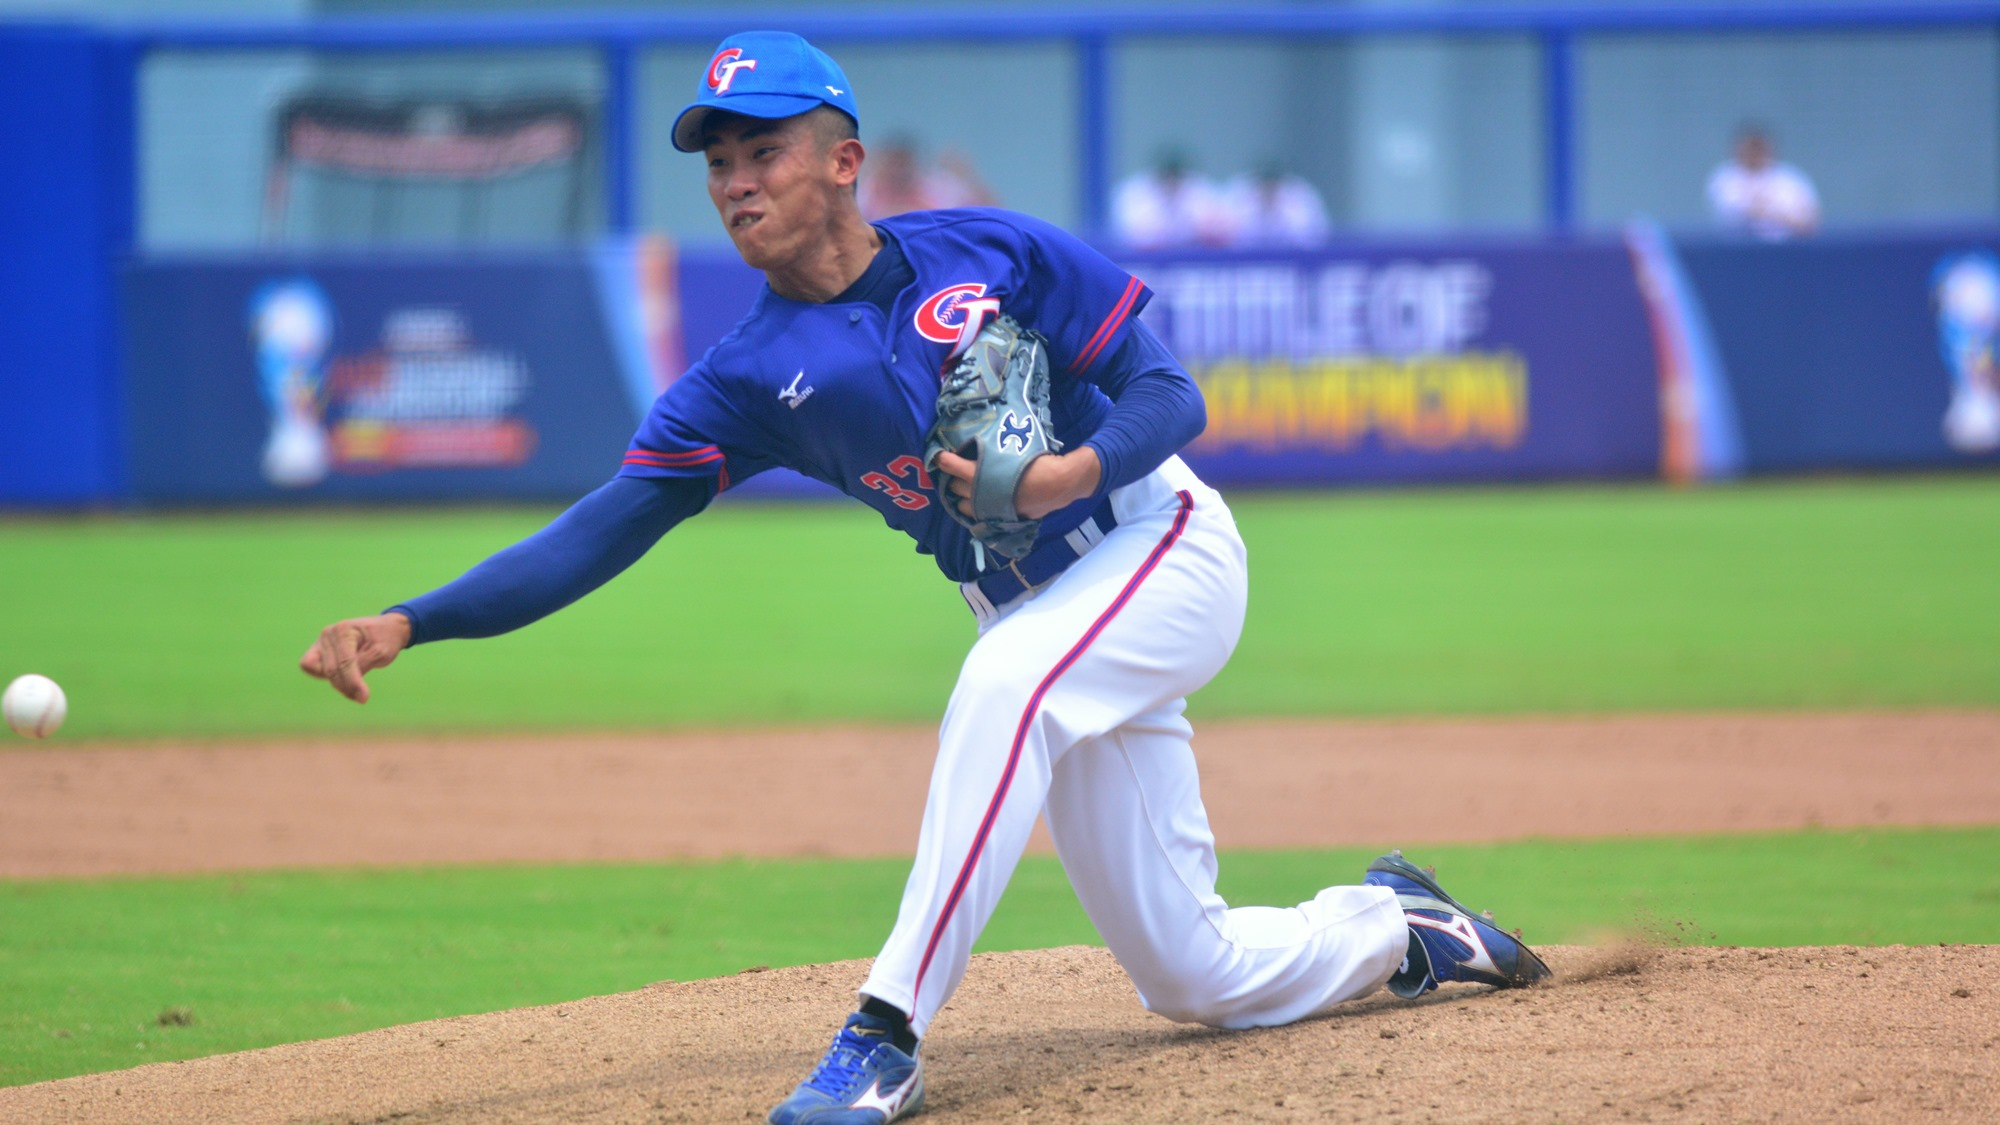 Reliever Chen Liang Chih went 6.2 innings without allowing a run for Chinese Taipei